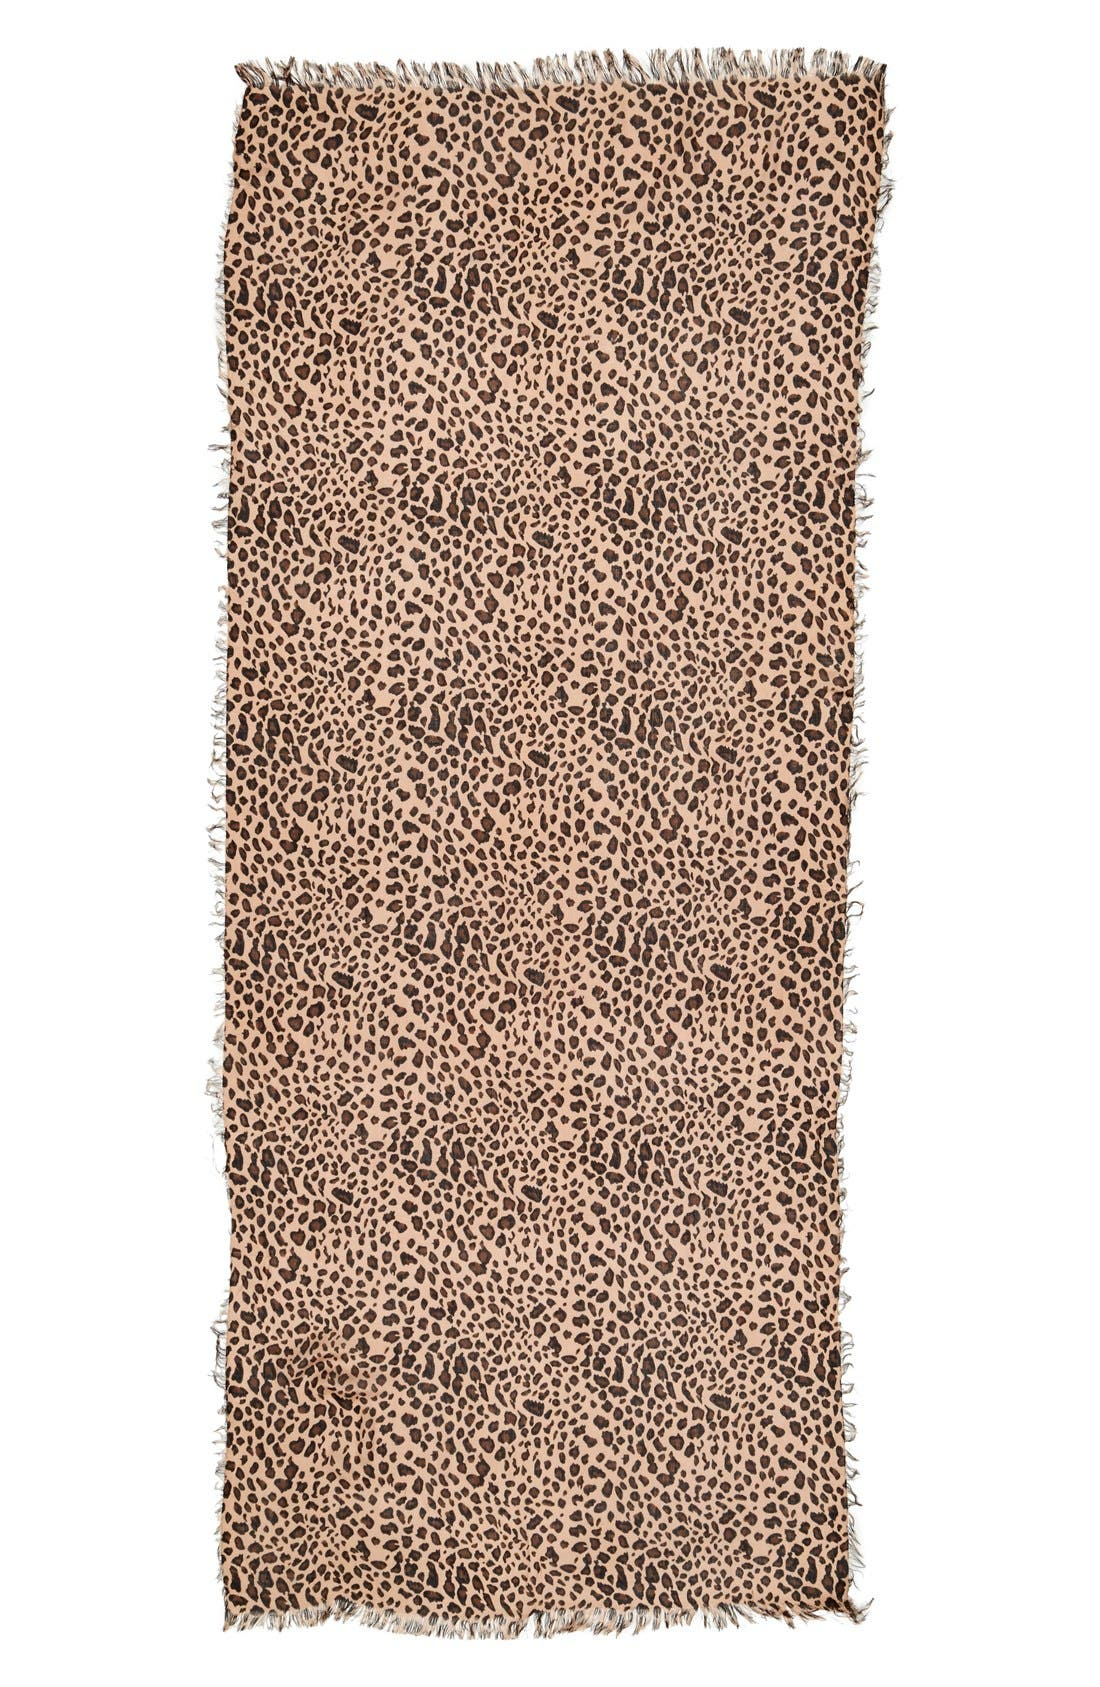 SOLE SOCIETY, Leopard Print Scarf, Alternate thumbnail 2, color, BROWN